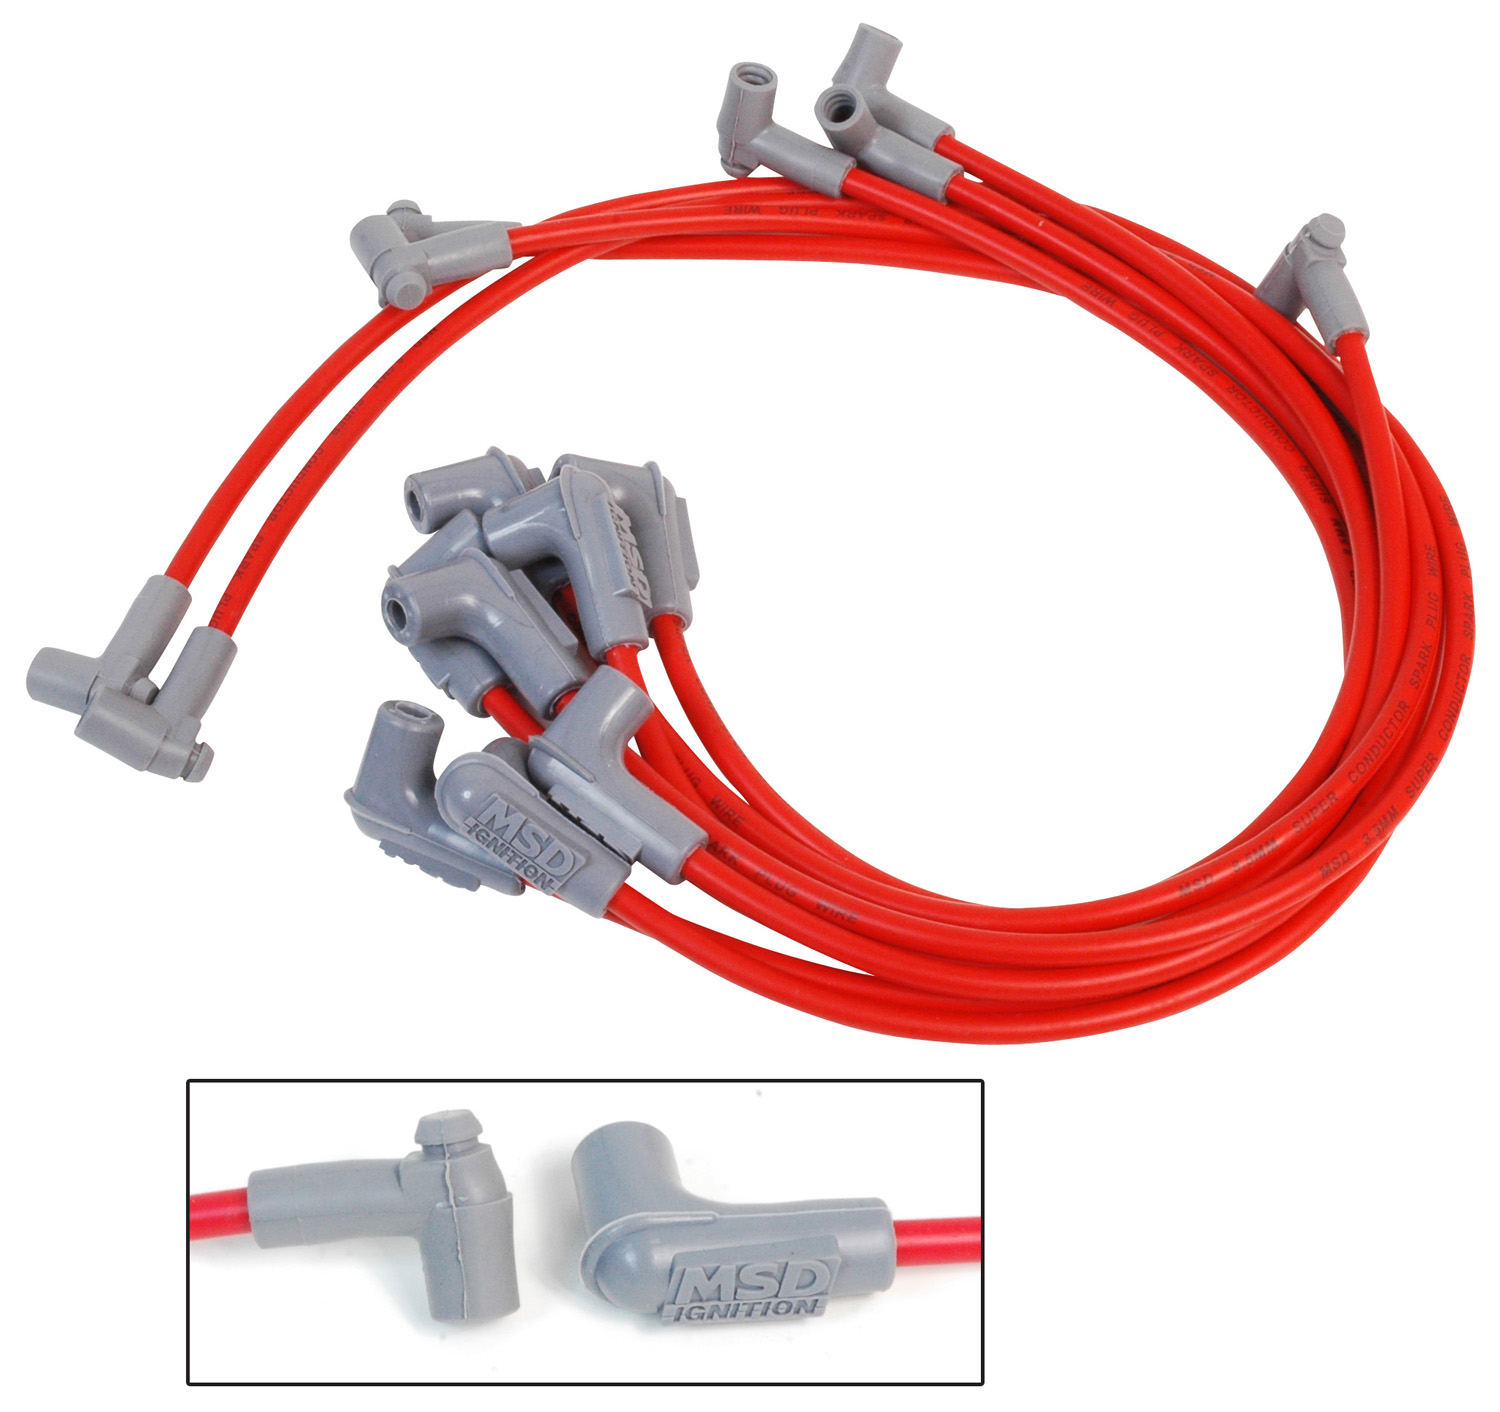 Chevy Spark Plug Cap On An Hei Distributor Wiring Wire Center Scope8217s Time Base Calibrator Msd 35659 Custom Sets At Atkhp Com Rh High Performance Engines